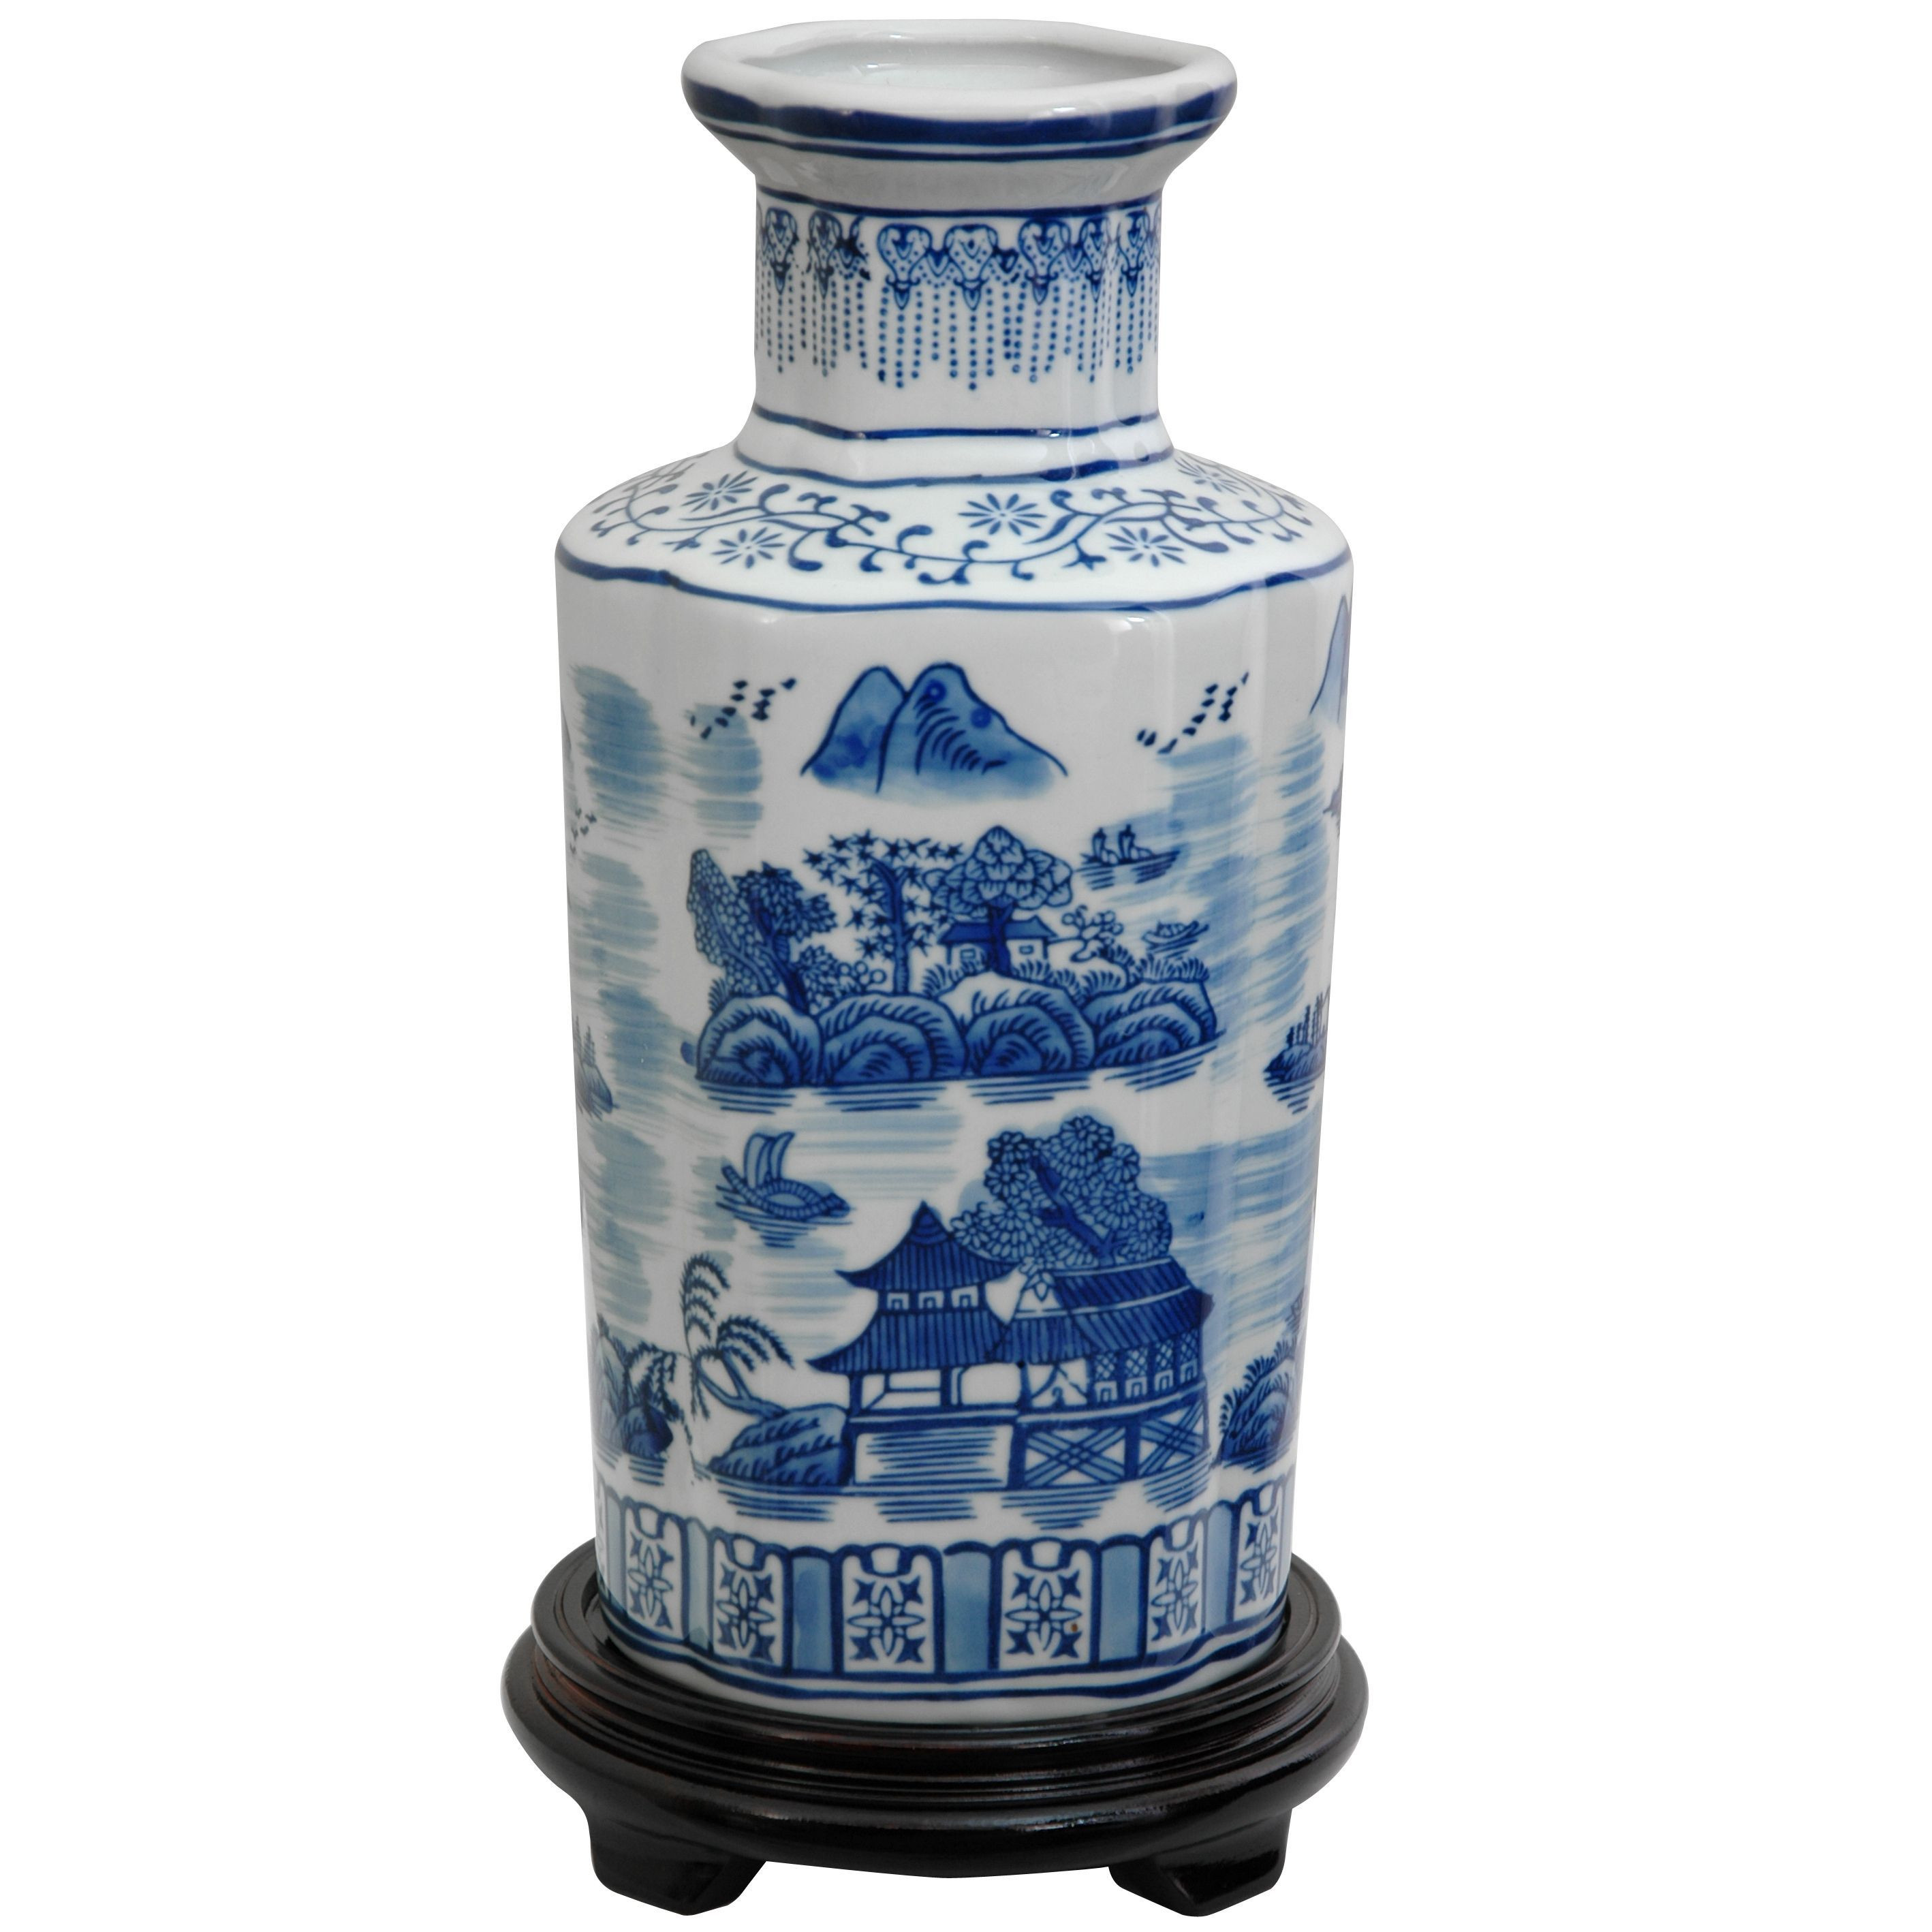 11 attractive Chinese Vase with Stand 2021 free download chinese vase with stand of handmade porcelain 12 inch blue and white landscape vase 12 in handmade porcelain 12 inch blue and white landscape vase china